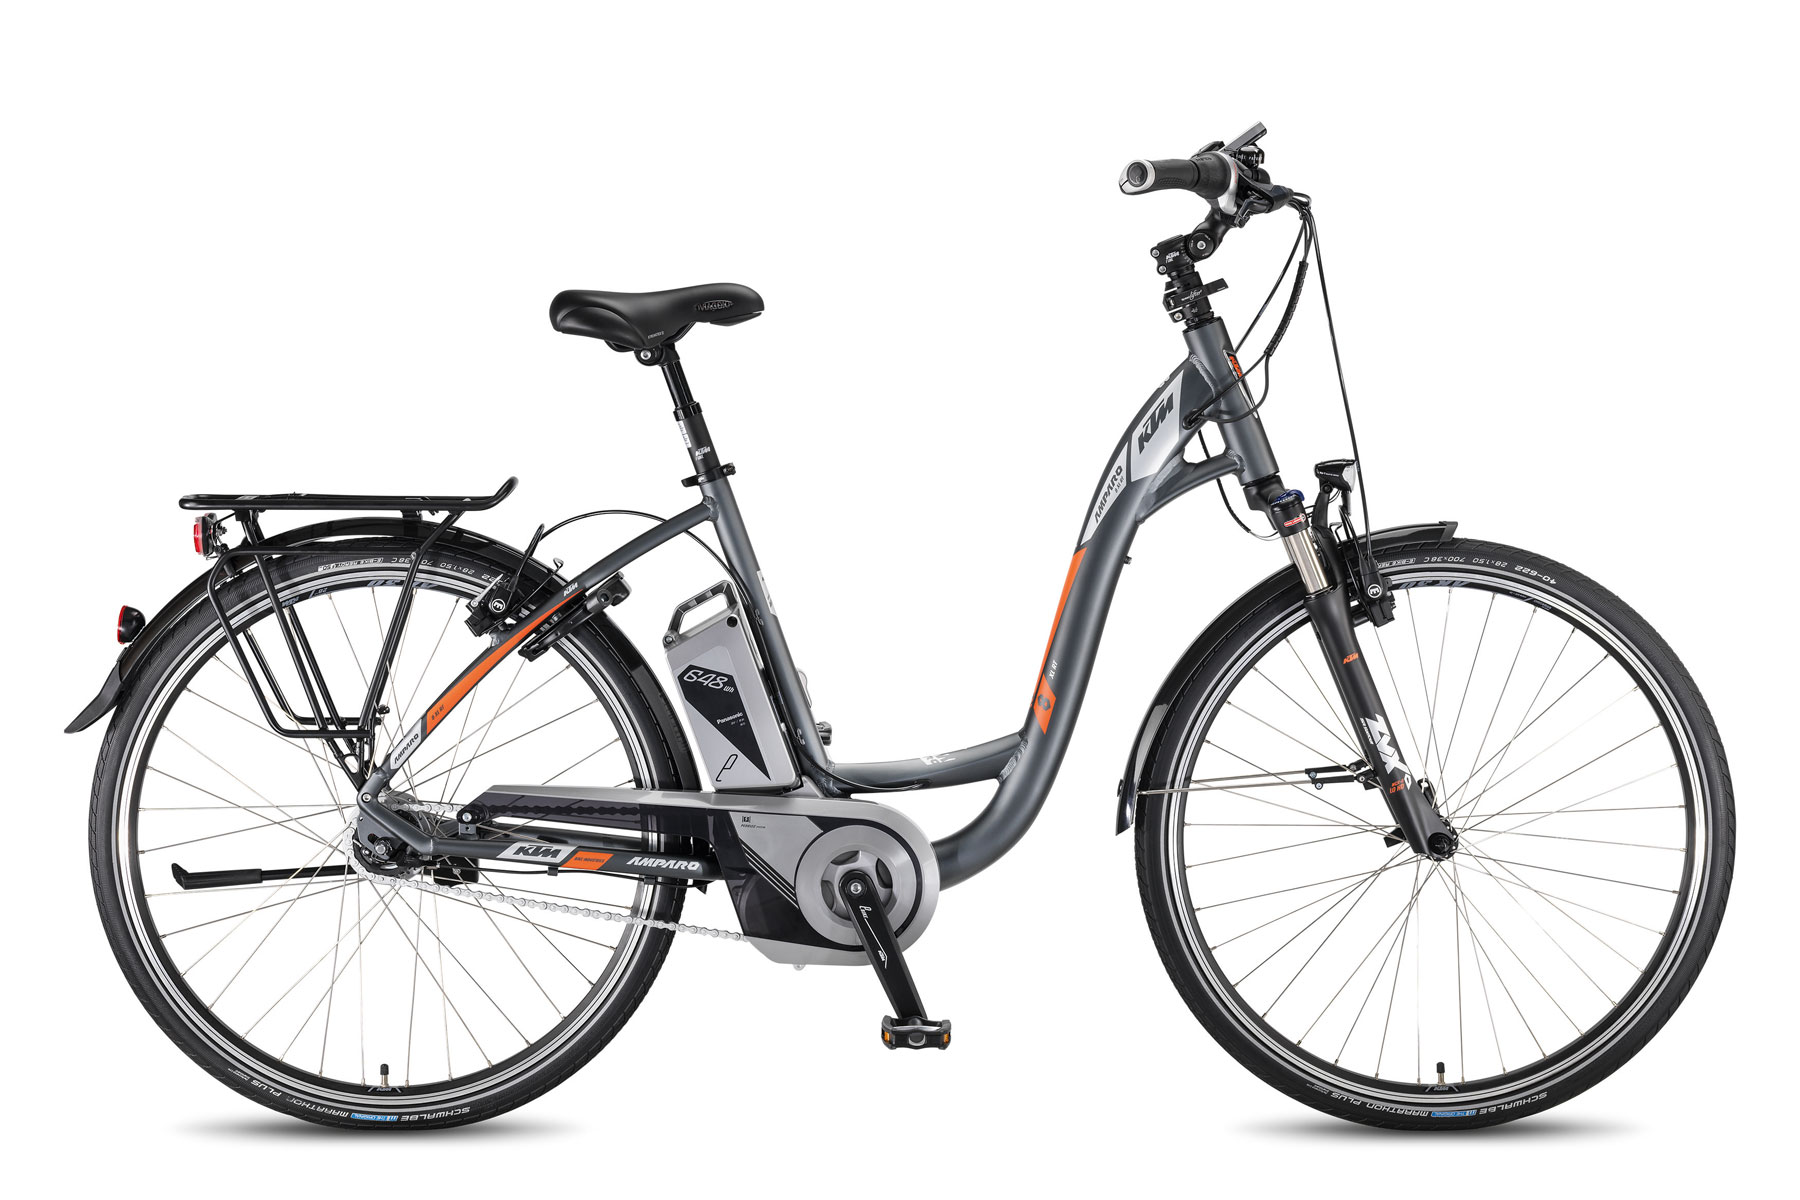 Bicicleta KTM Electrica AMPARO XL 8-RT 28 648    8s Nexus/RT 2017